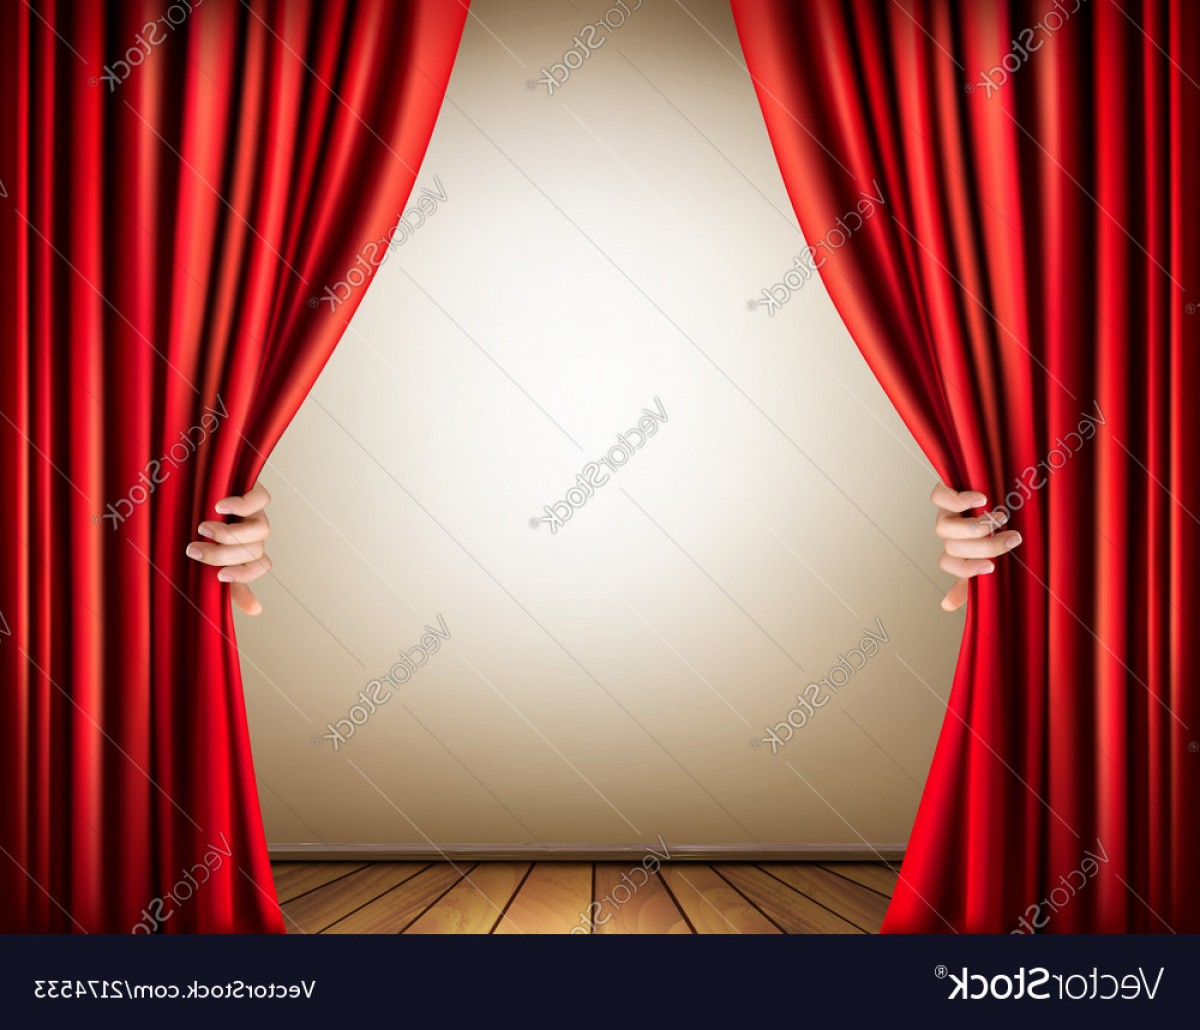 Stage Curtain Vector: Background With A Stage And A Curtain Vector